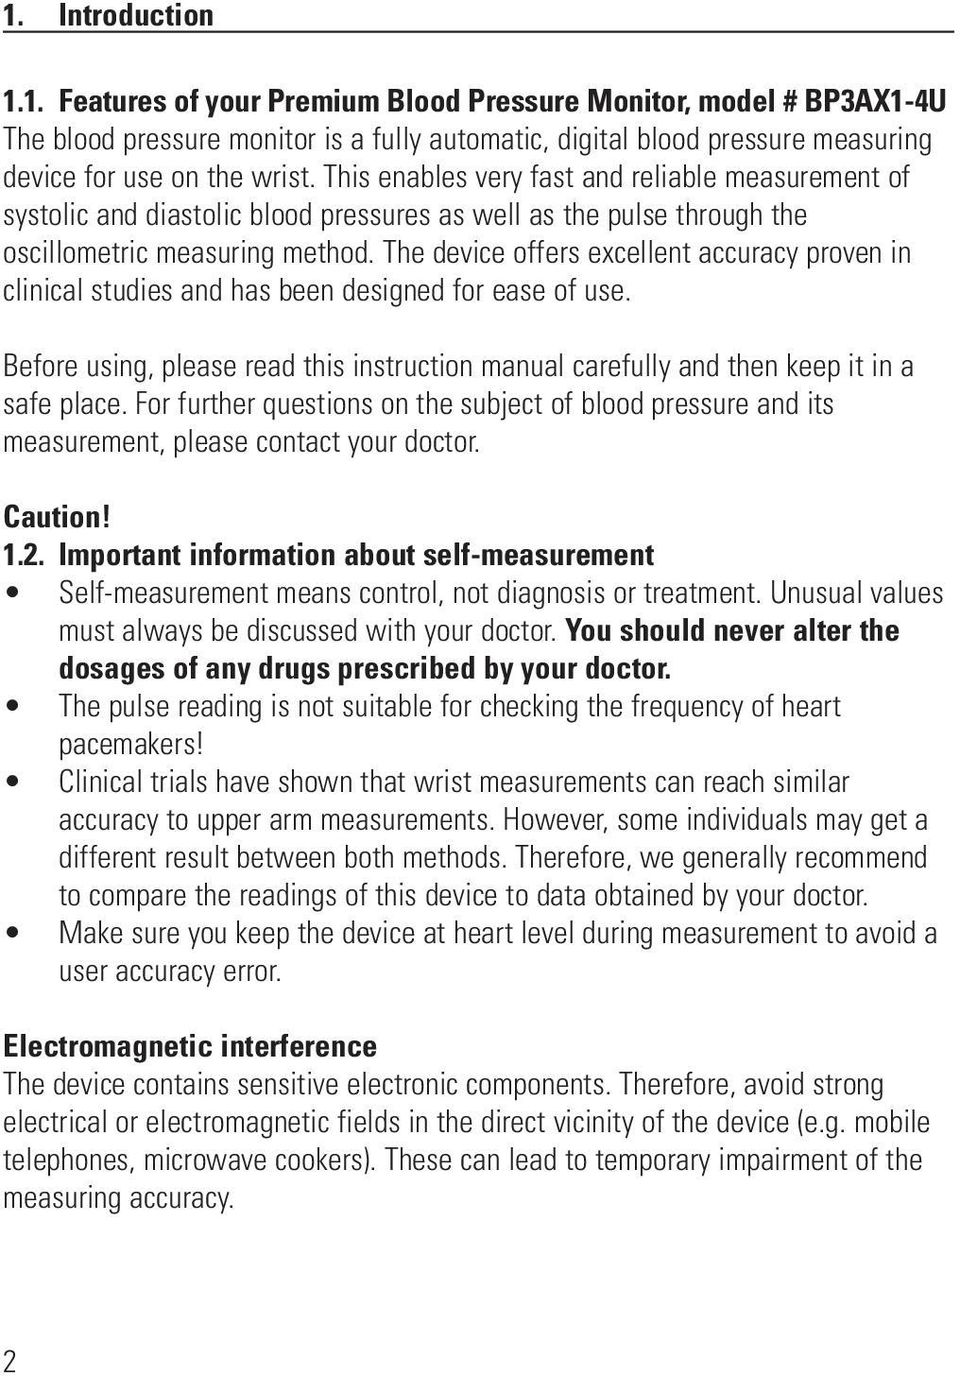 The device offers excellent accuracy proven in clinical studies and has been designed for ease of use. Before using, please read this instruction manual carefully and then keep it in a safe place.